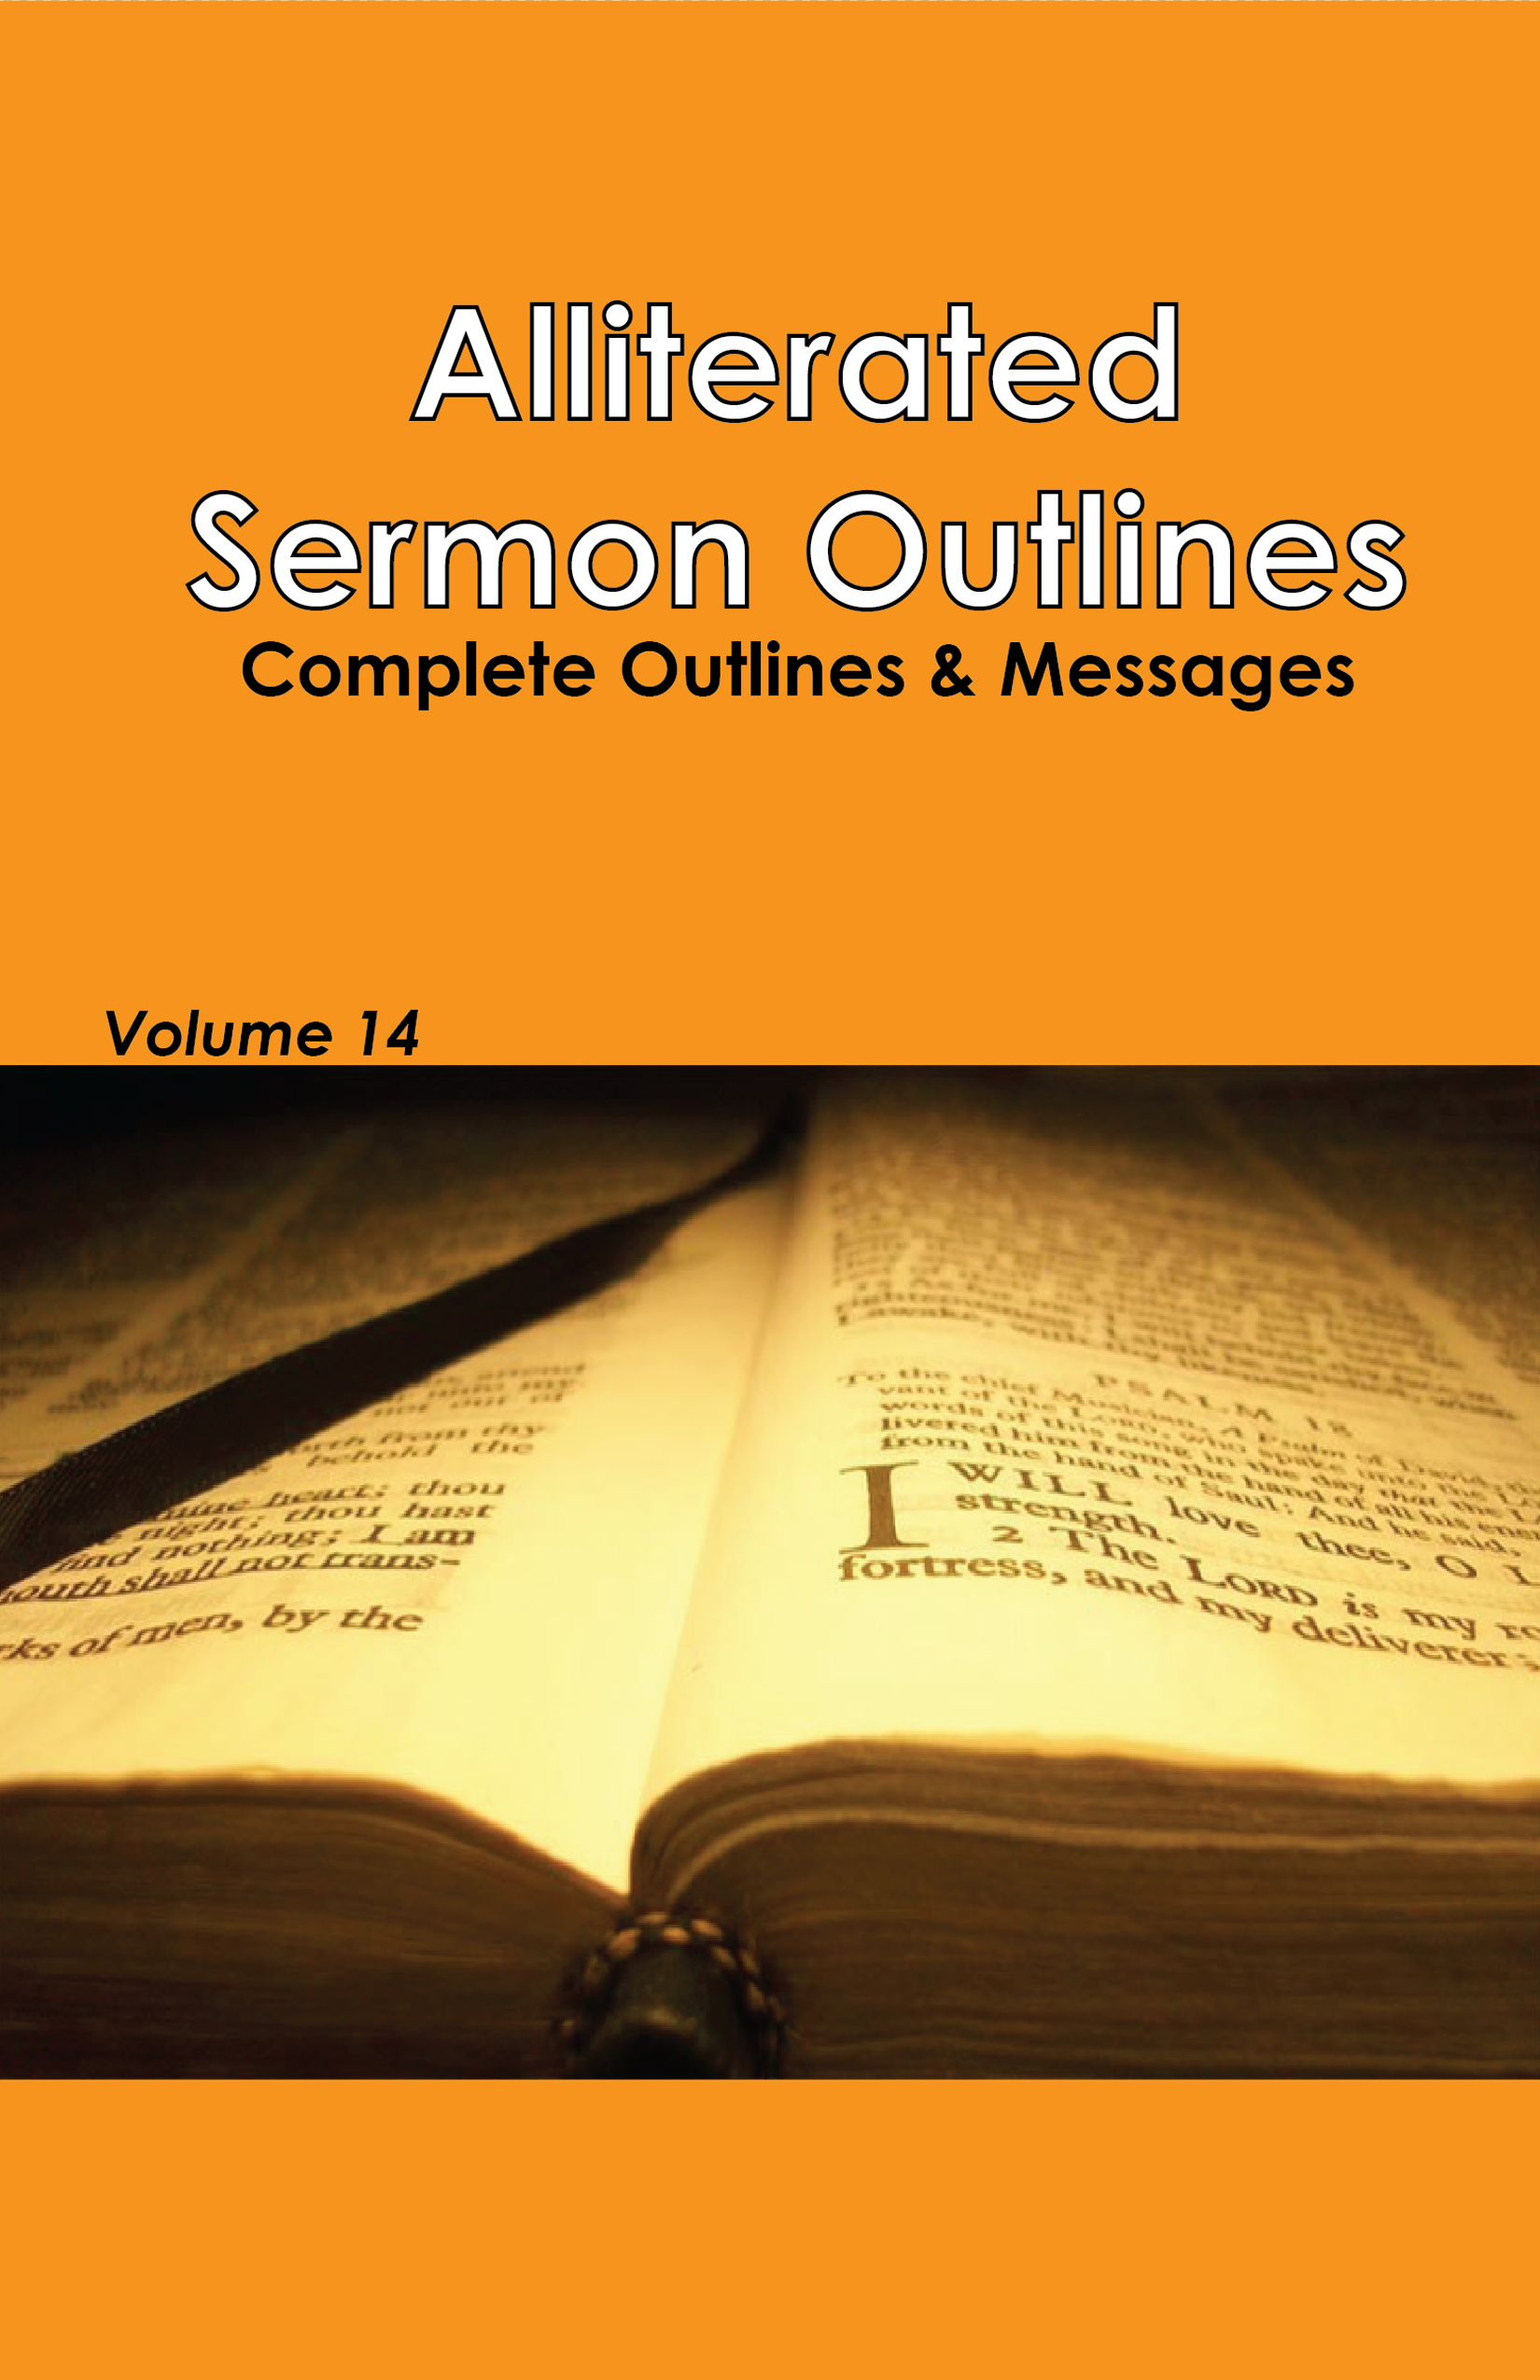 Alliterated Sermons - Volume 14